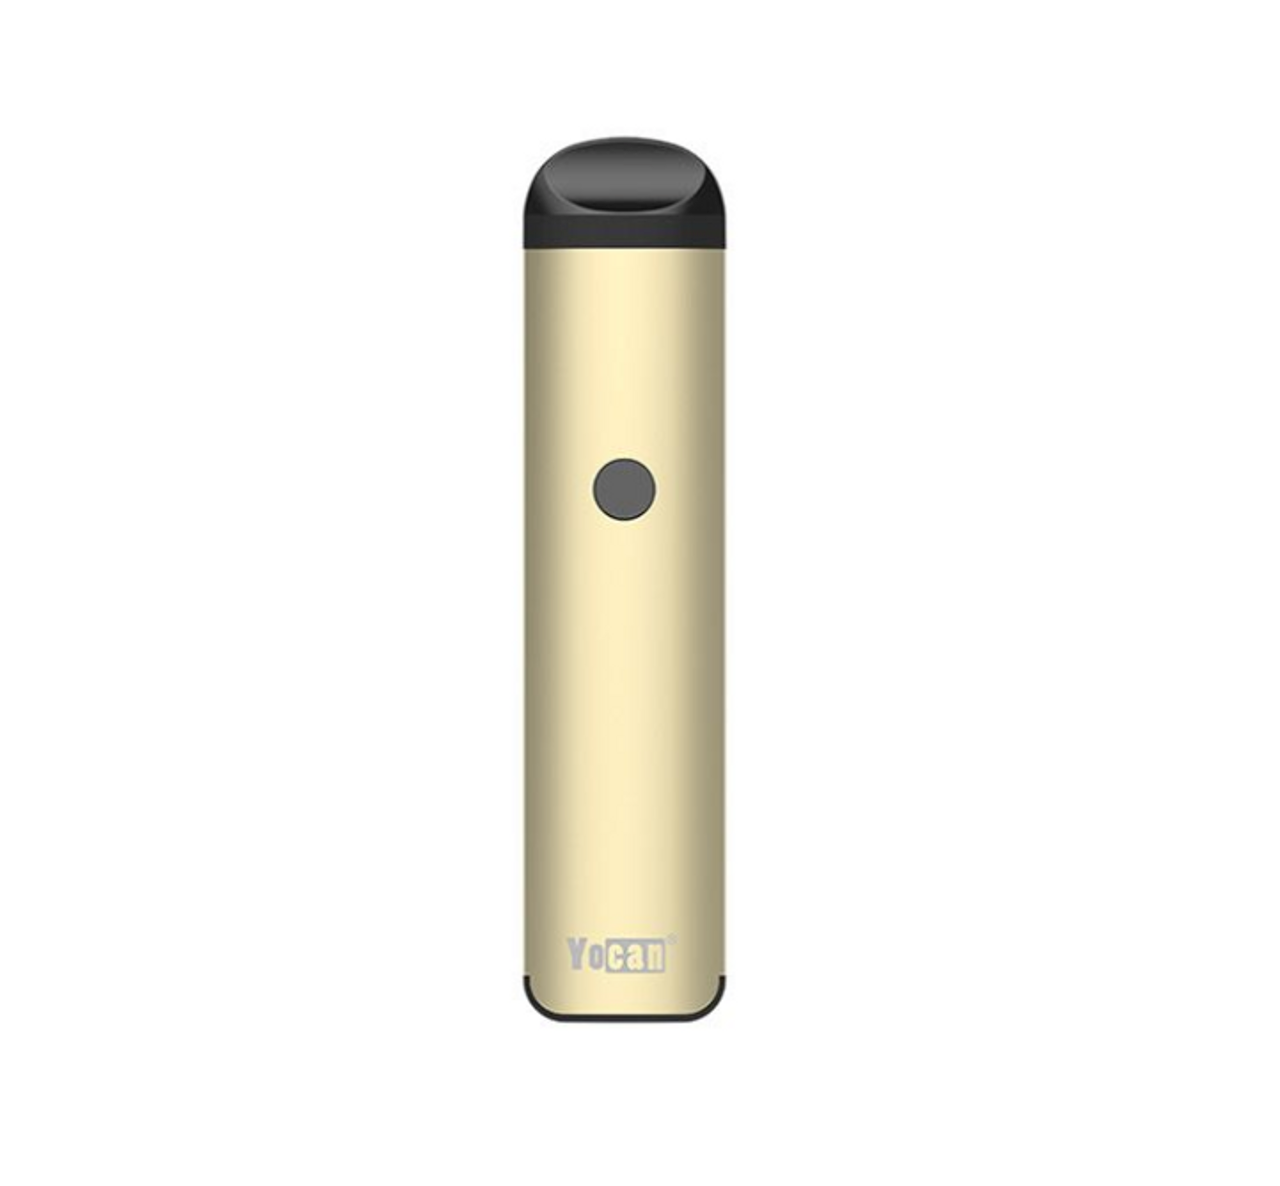 Yocan Evolve 2.0 All-In-One Pod System for Ejuice, Oil, & Concentrates